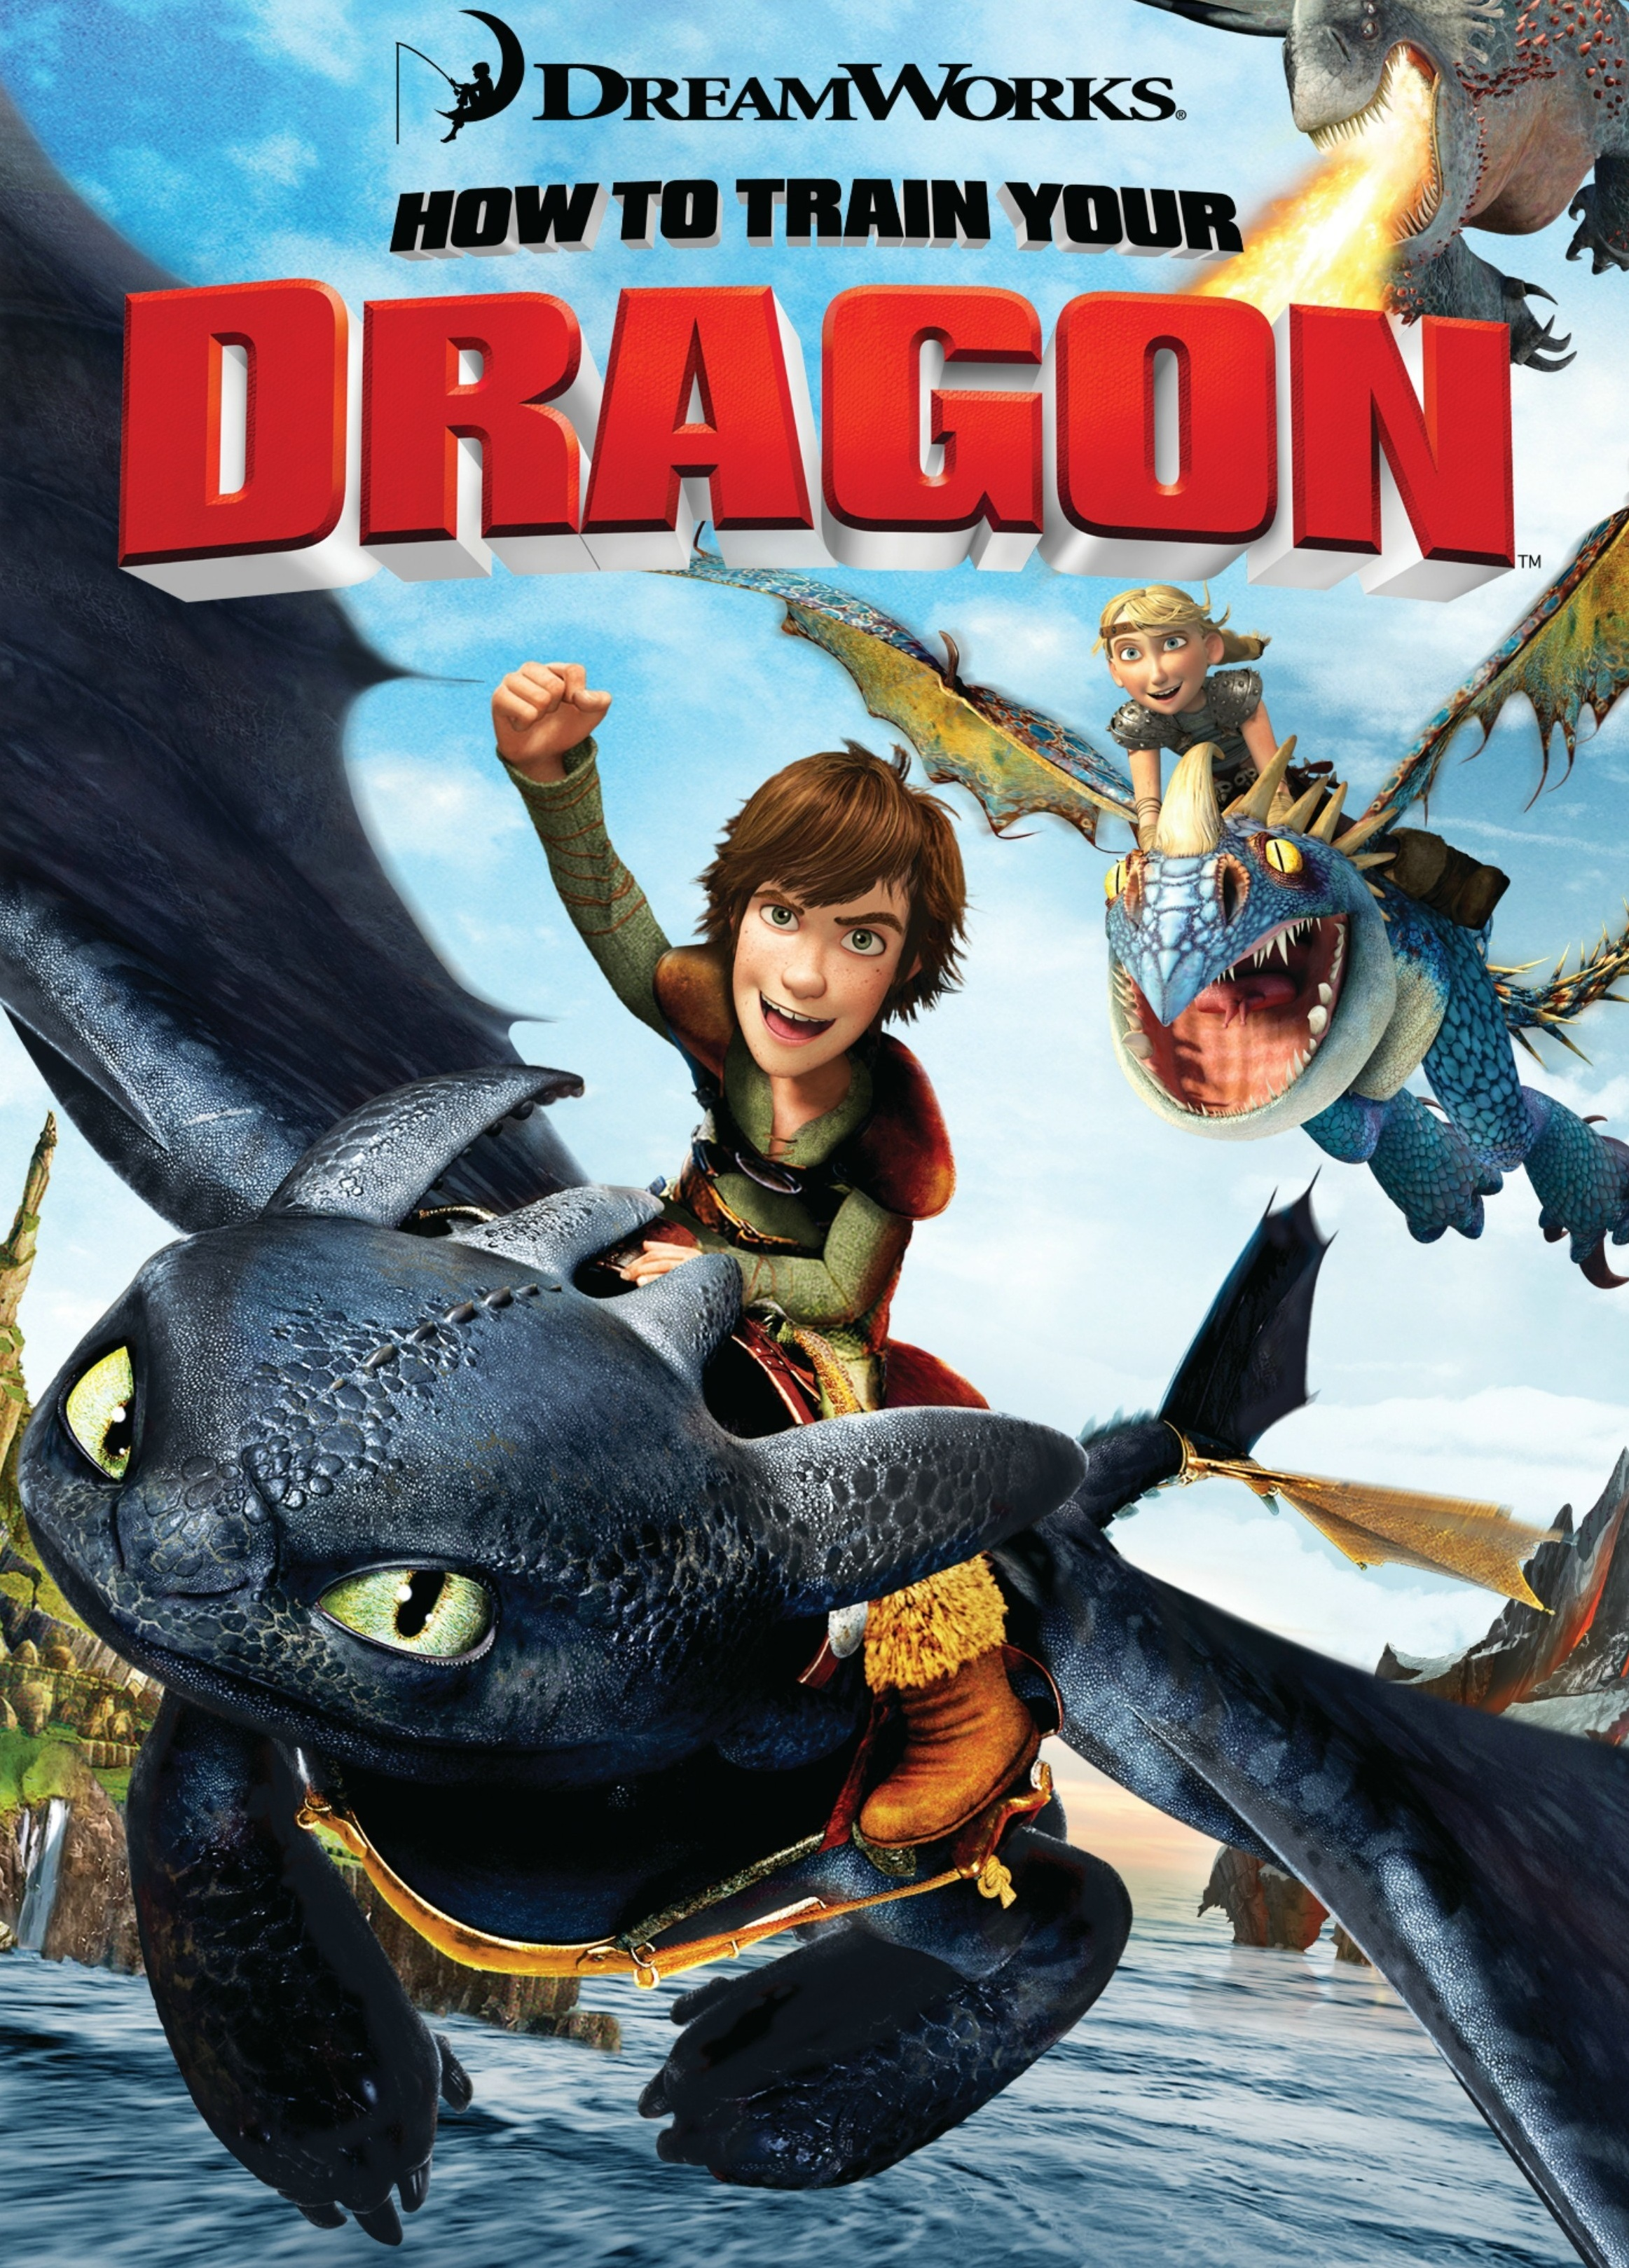 Adapted from 'How To Train Your Dragon'.